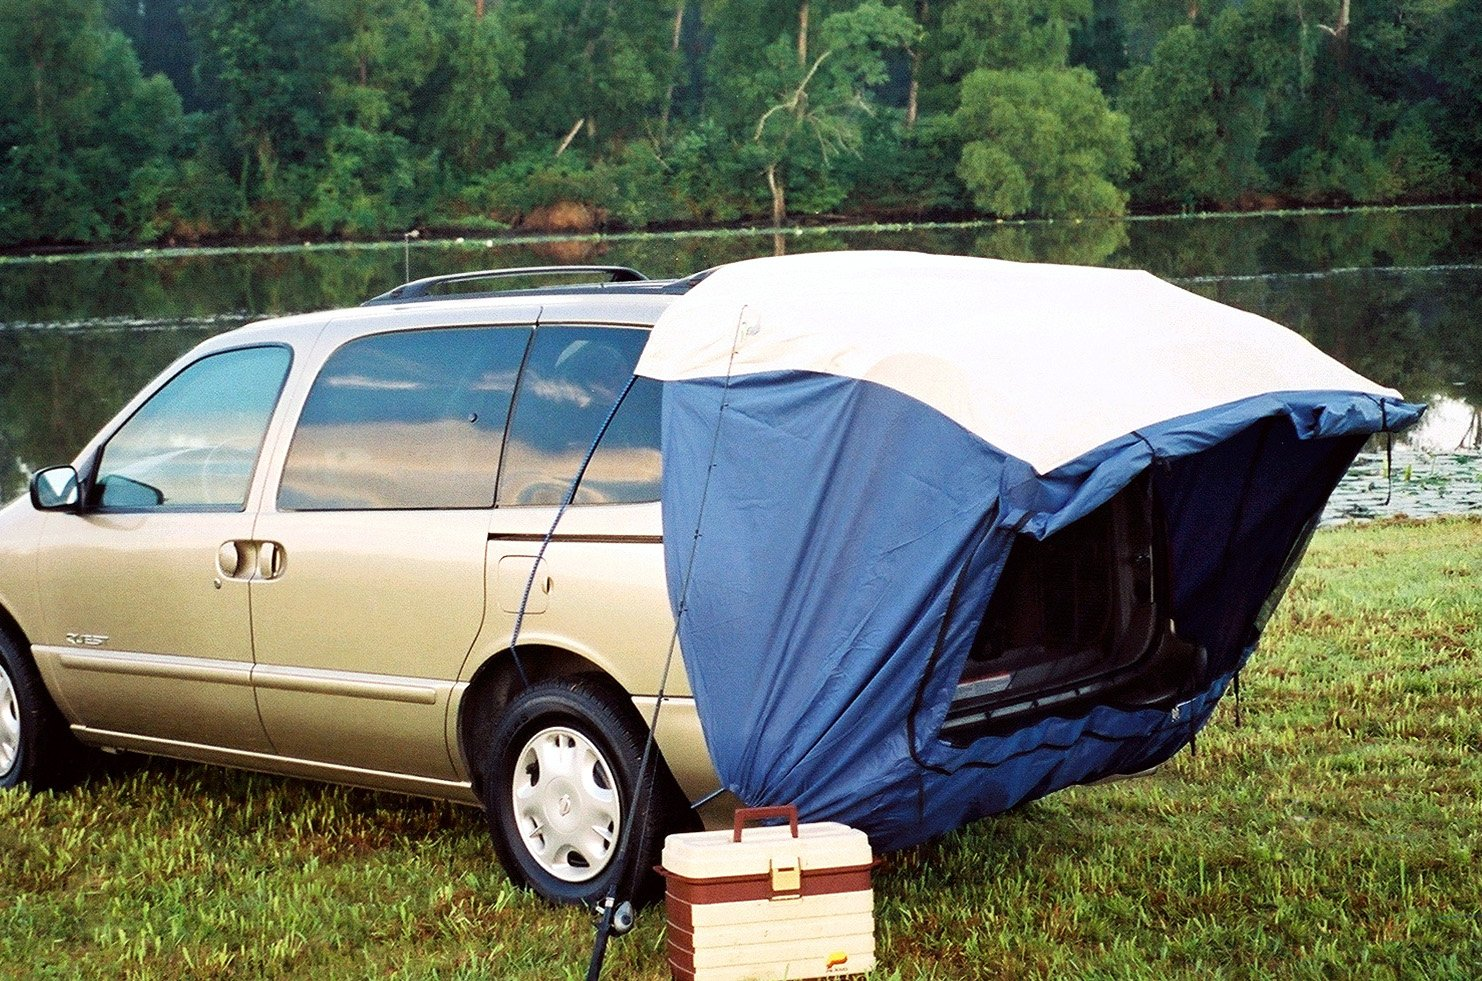 Explorer 2 SUV Tent at Amazon.com